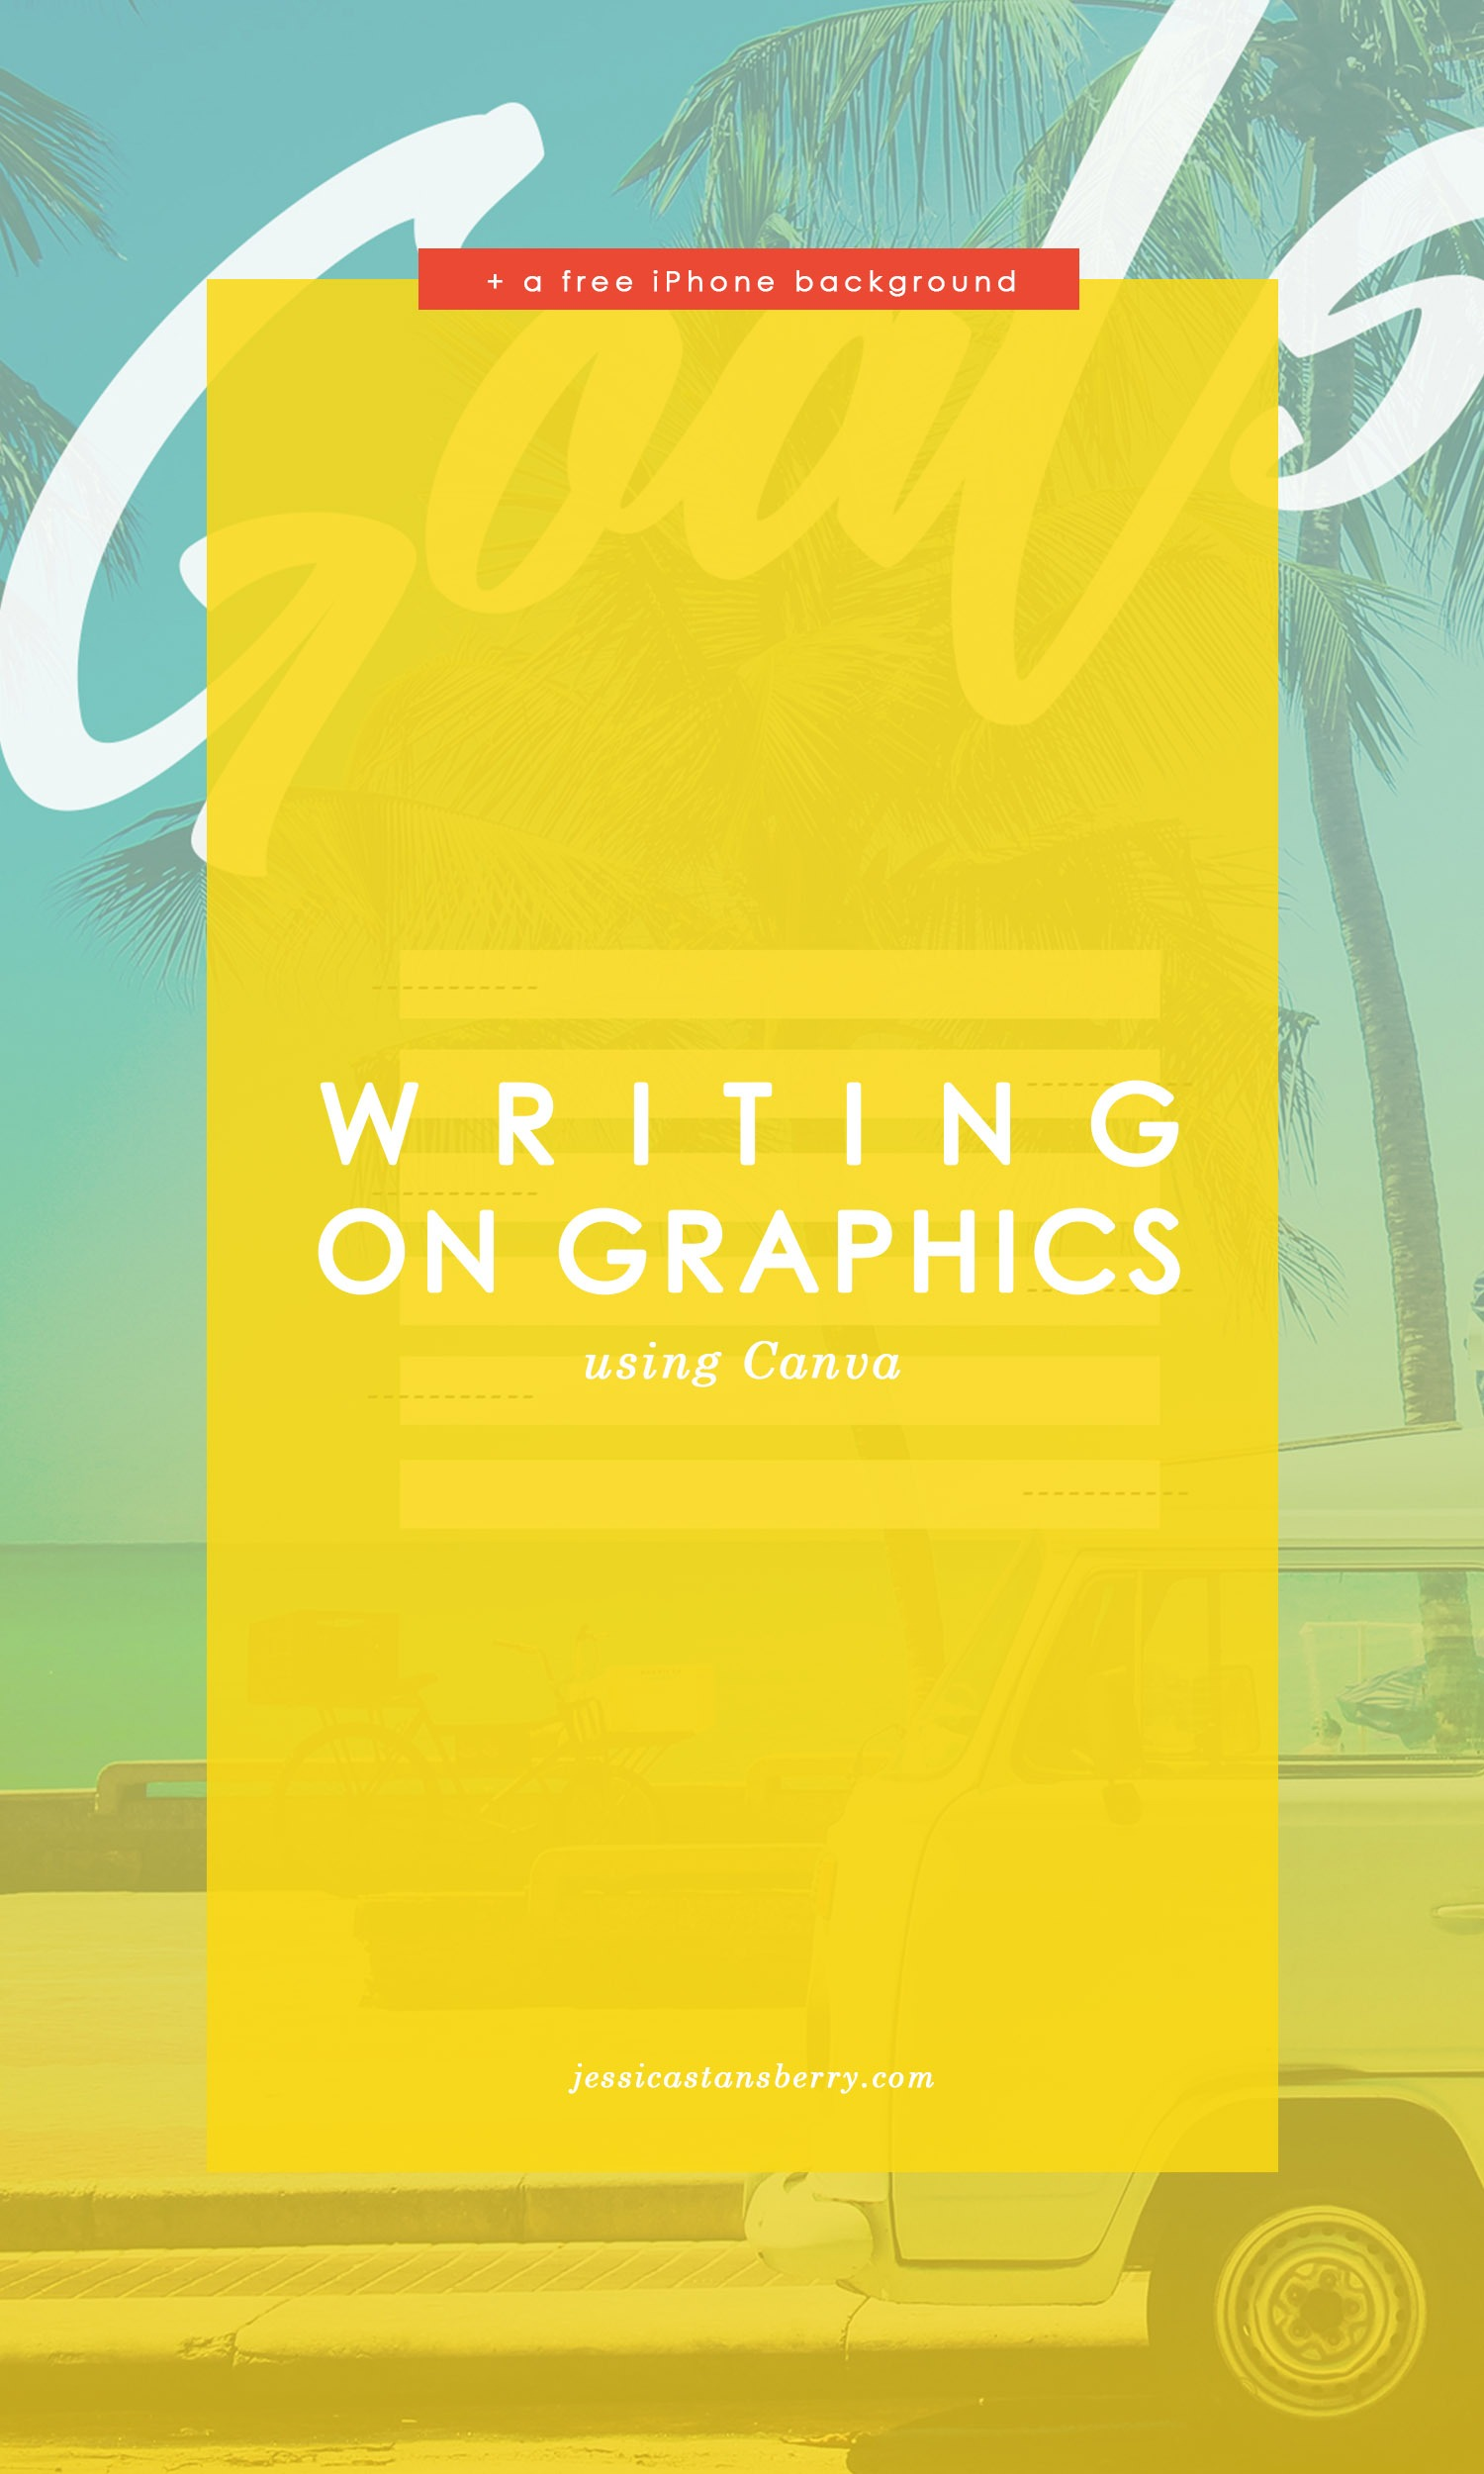 free iPhone Background | writing on images in Canva